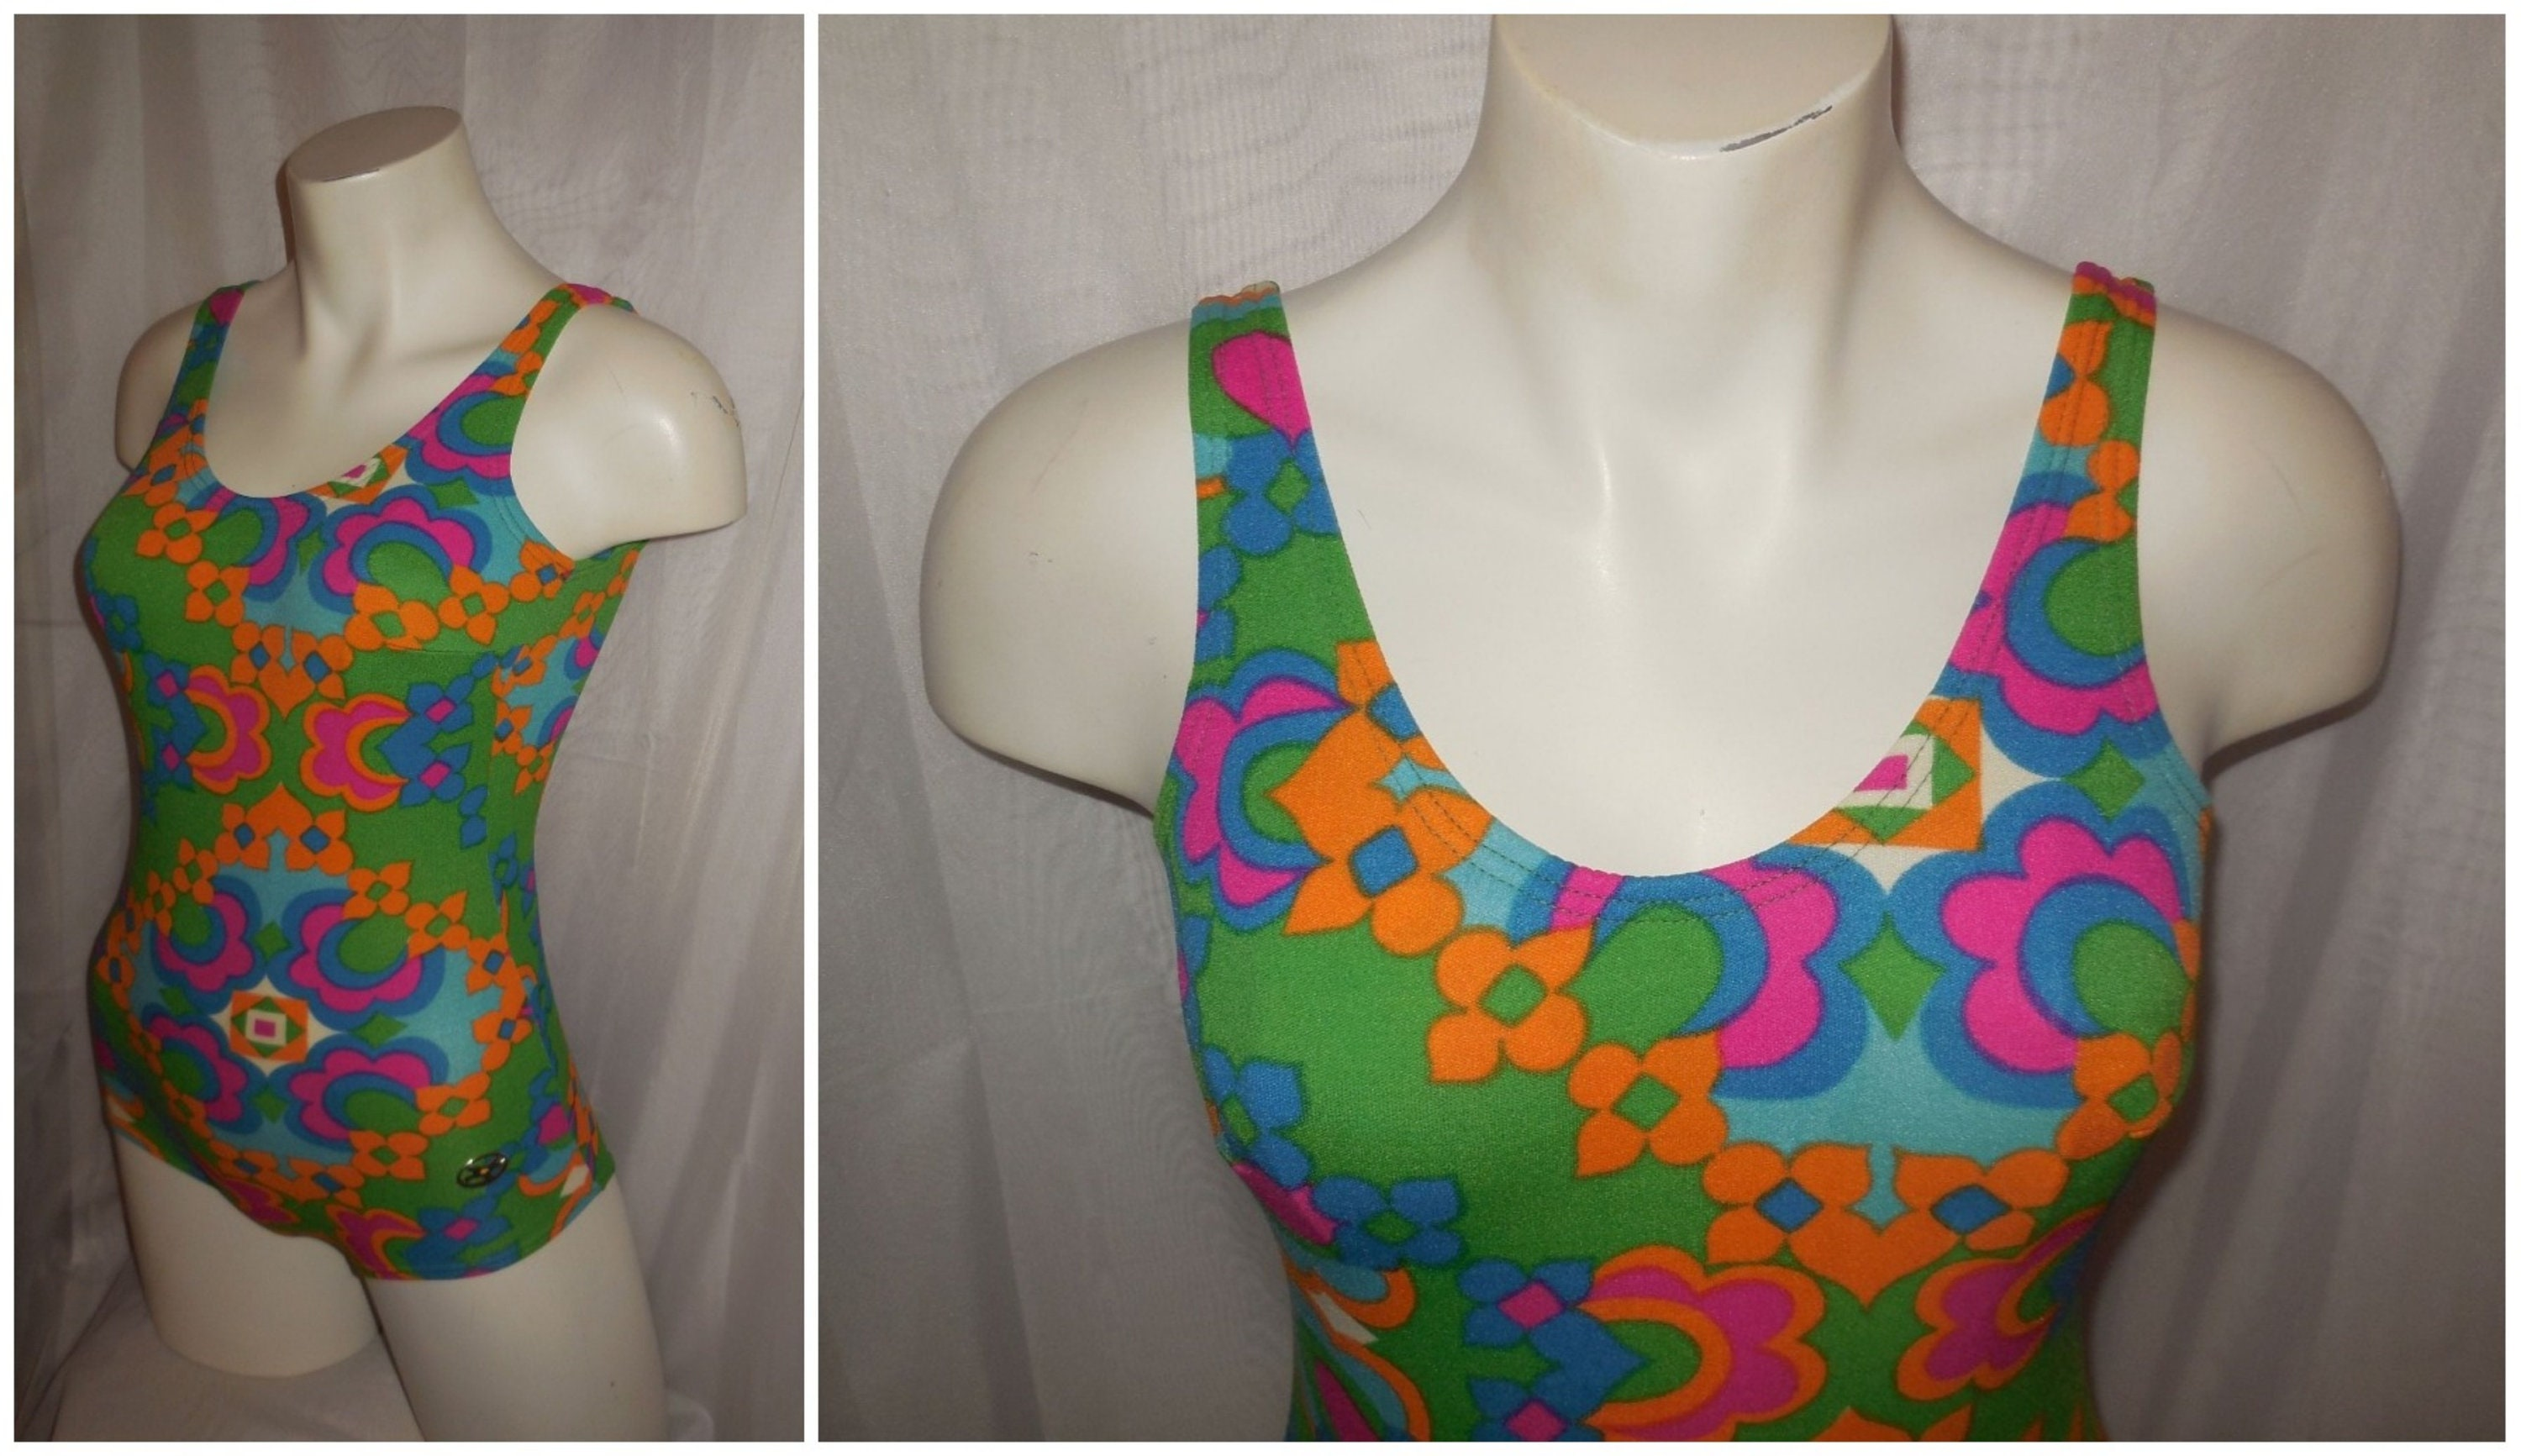 8fa9cdb75153f Vintage 1960s 70s Bathing Suit Bright Multicolor Psychedelic Floral Print  One Piece Swimsuit Mod Boho S chest to 36 inches